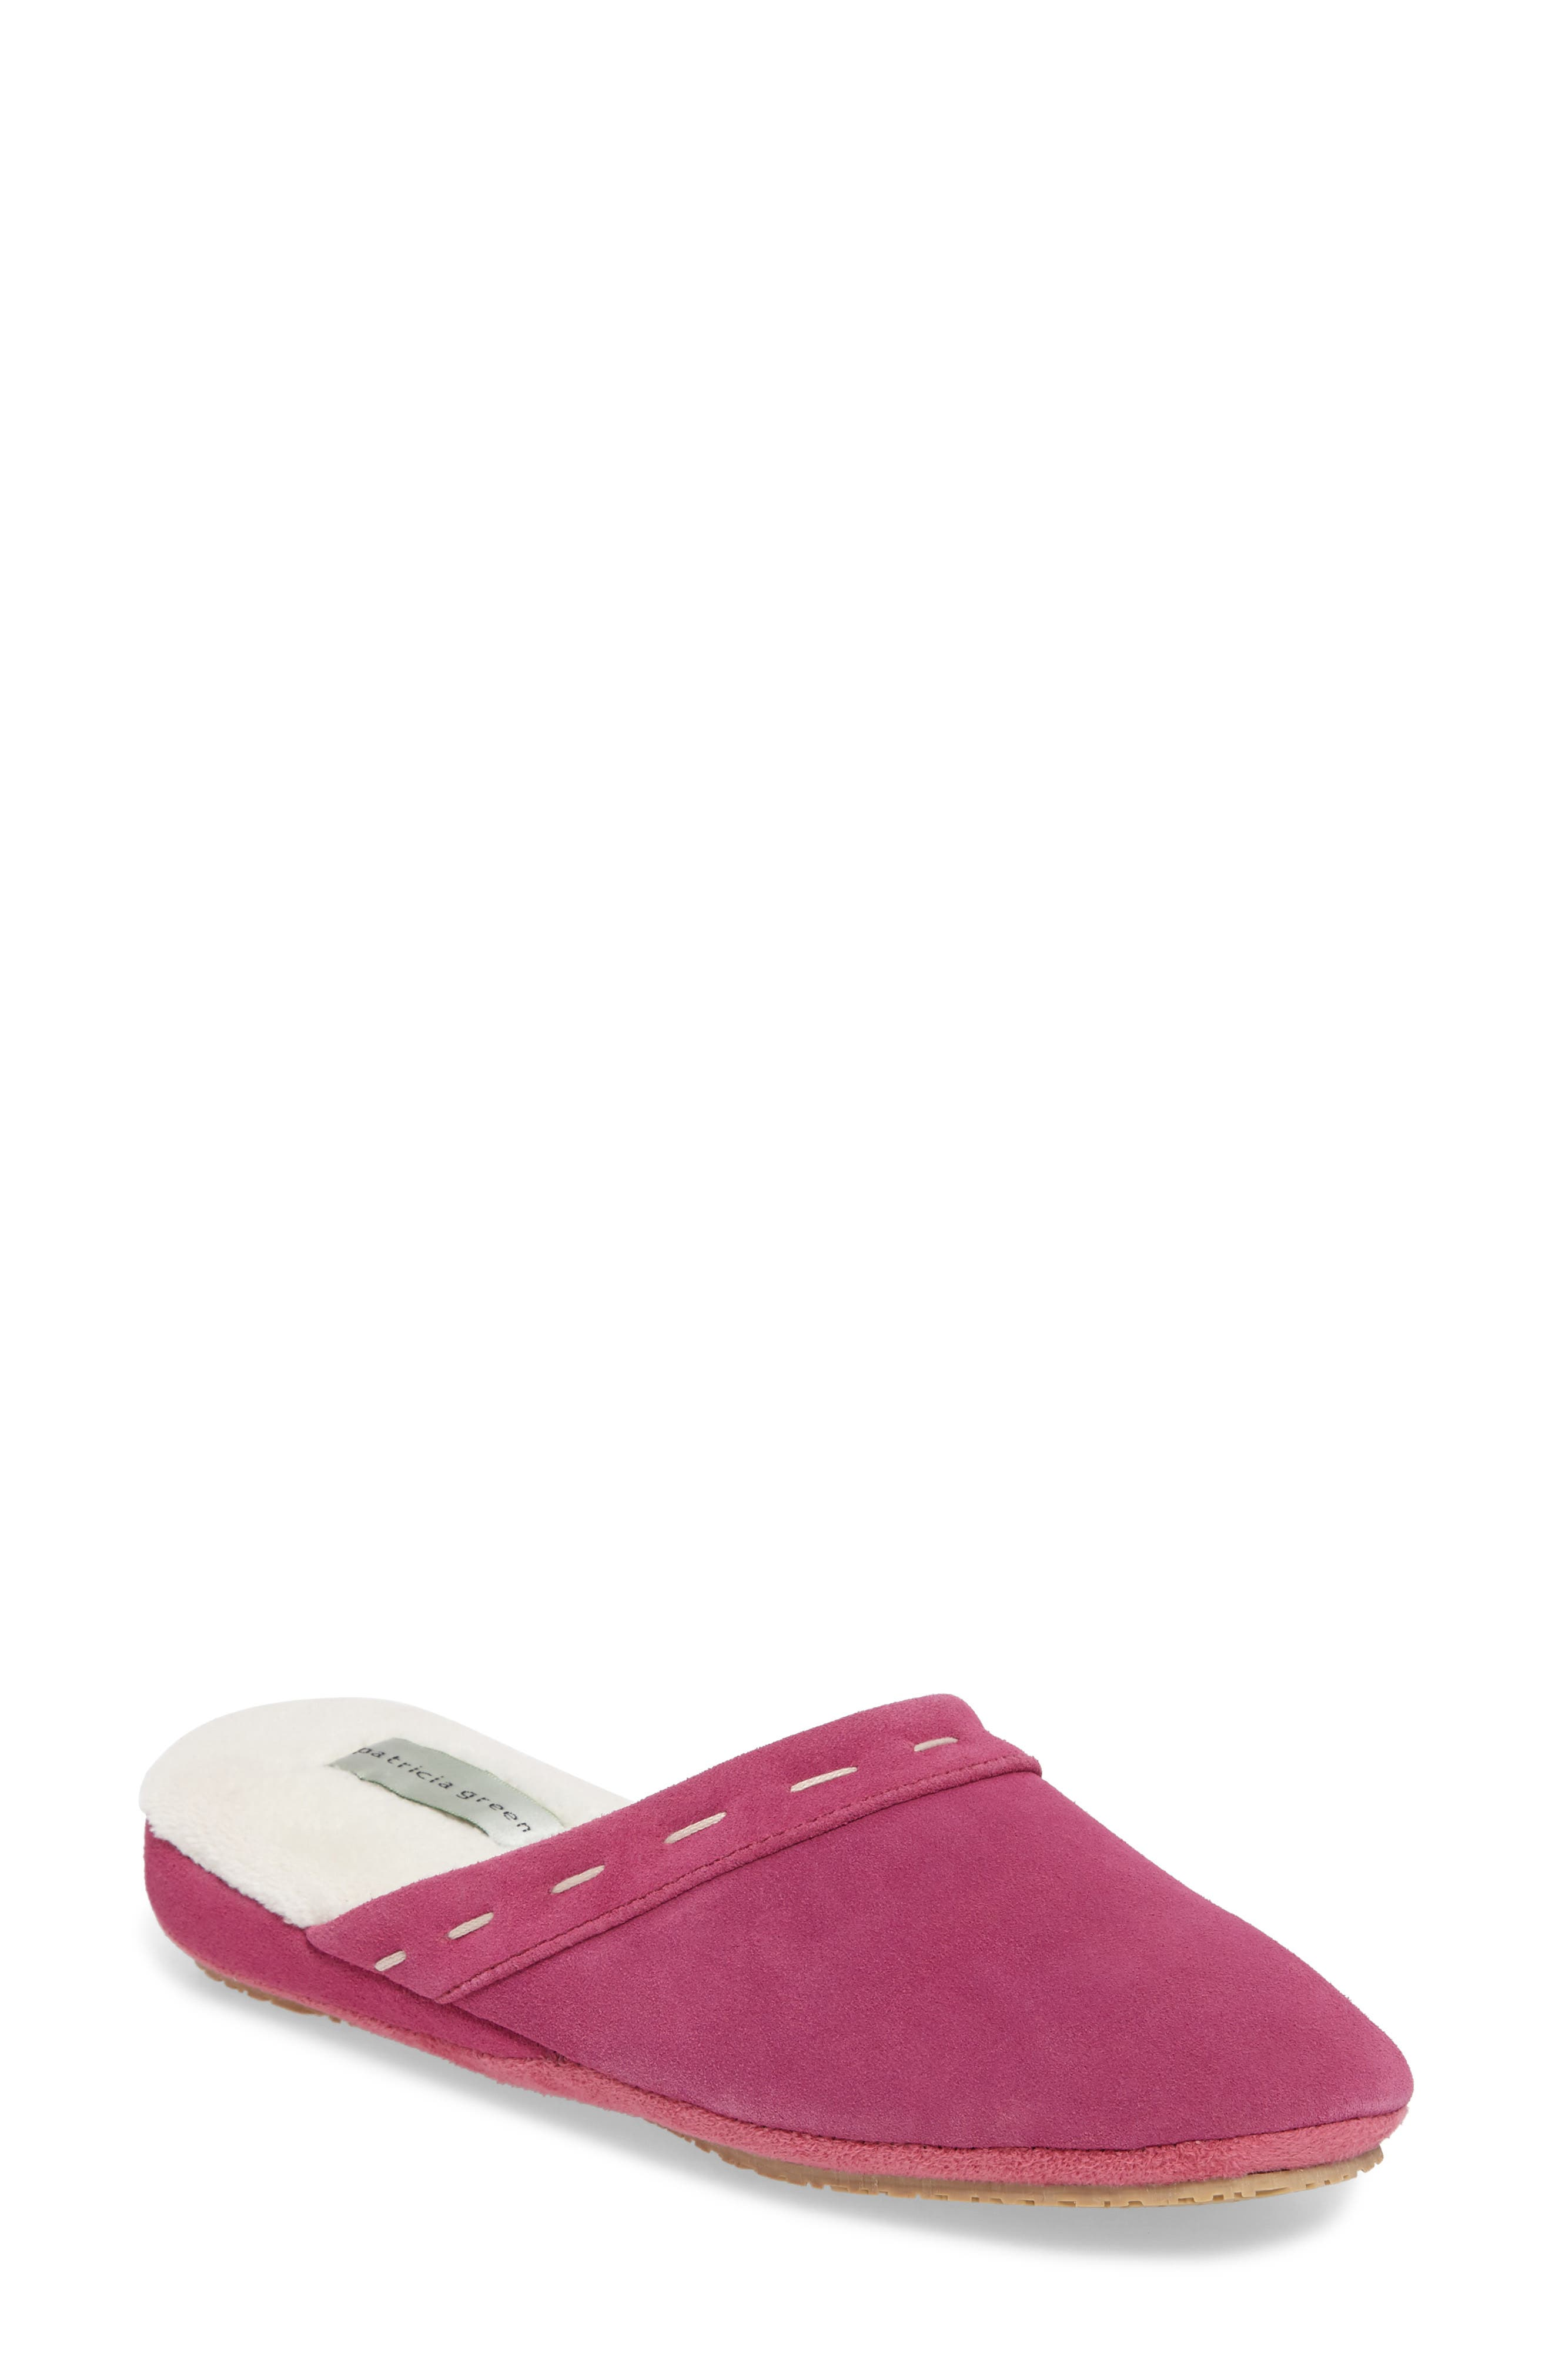 Mayfair Wedge Slipper,                             Main thumbnail 1, color,                             Hot Pink Suede